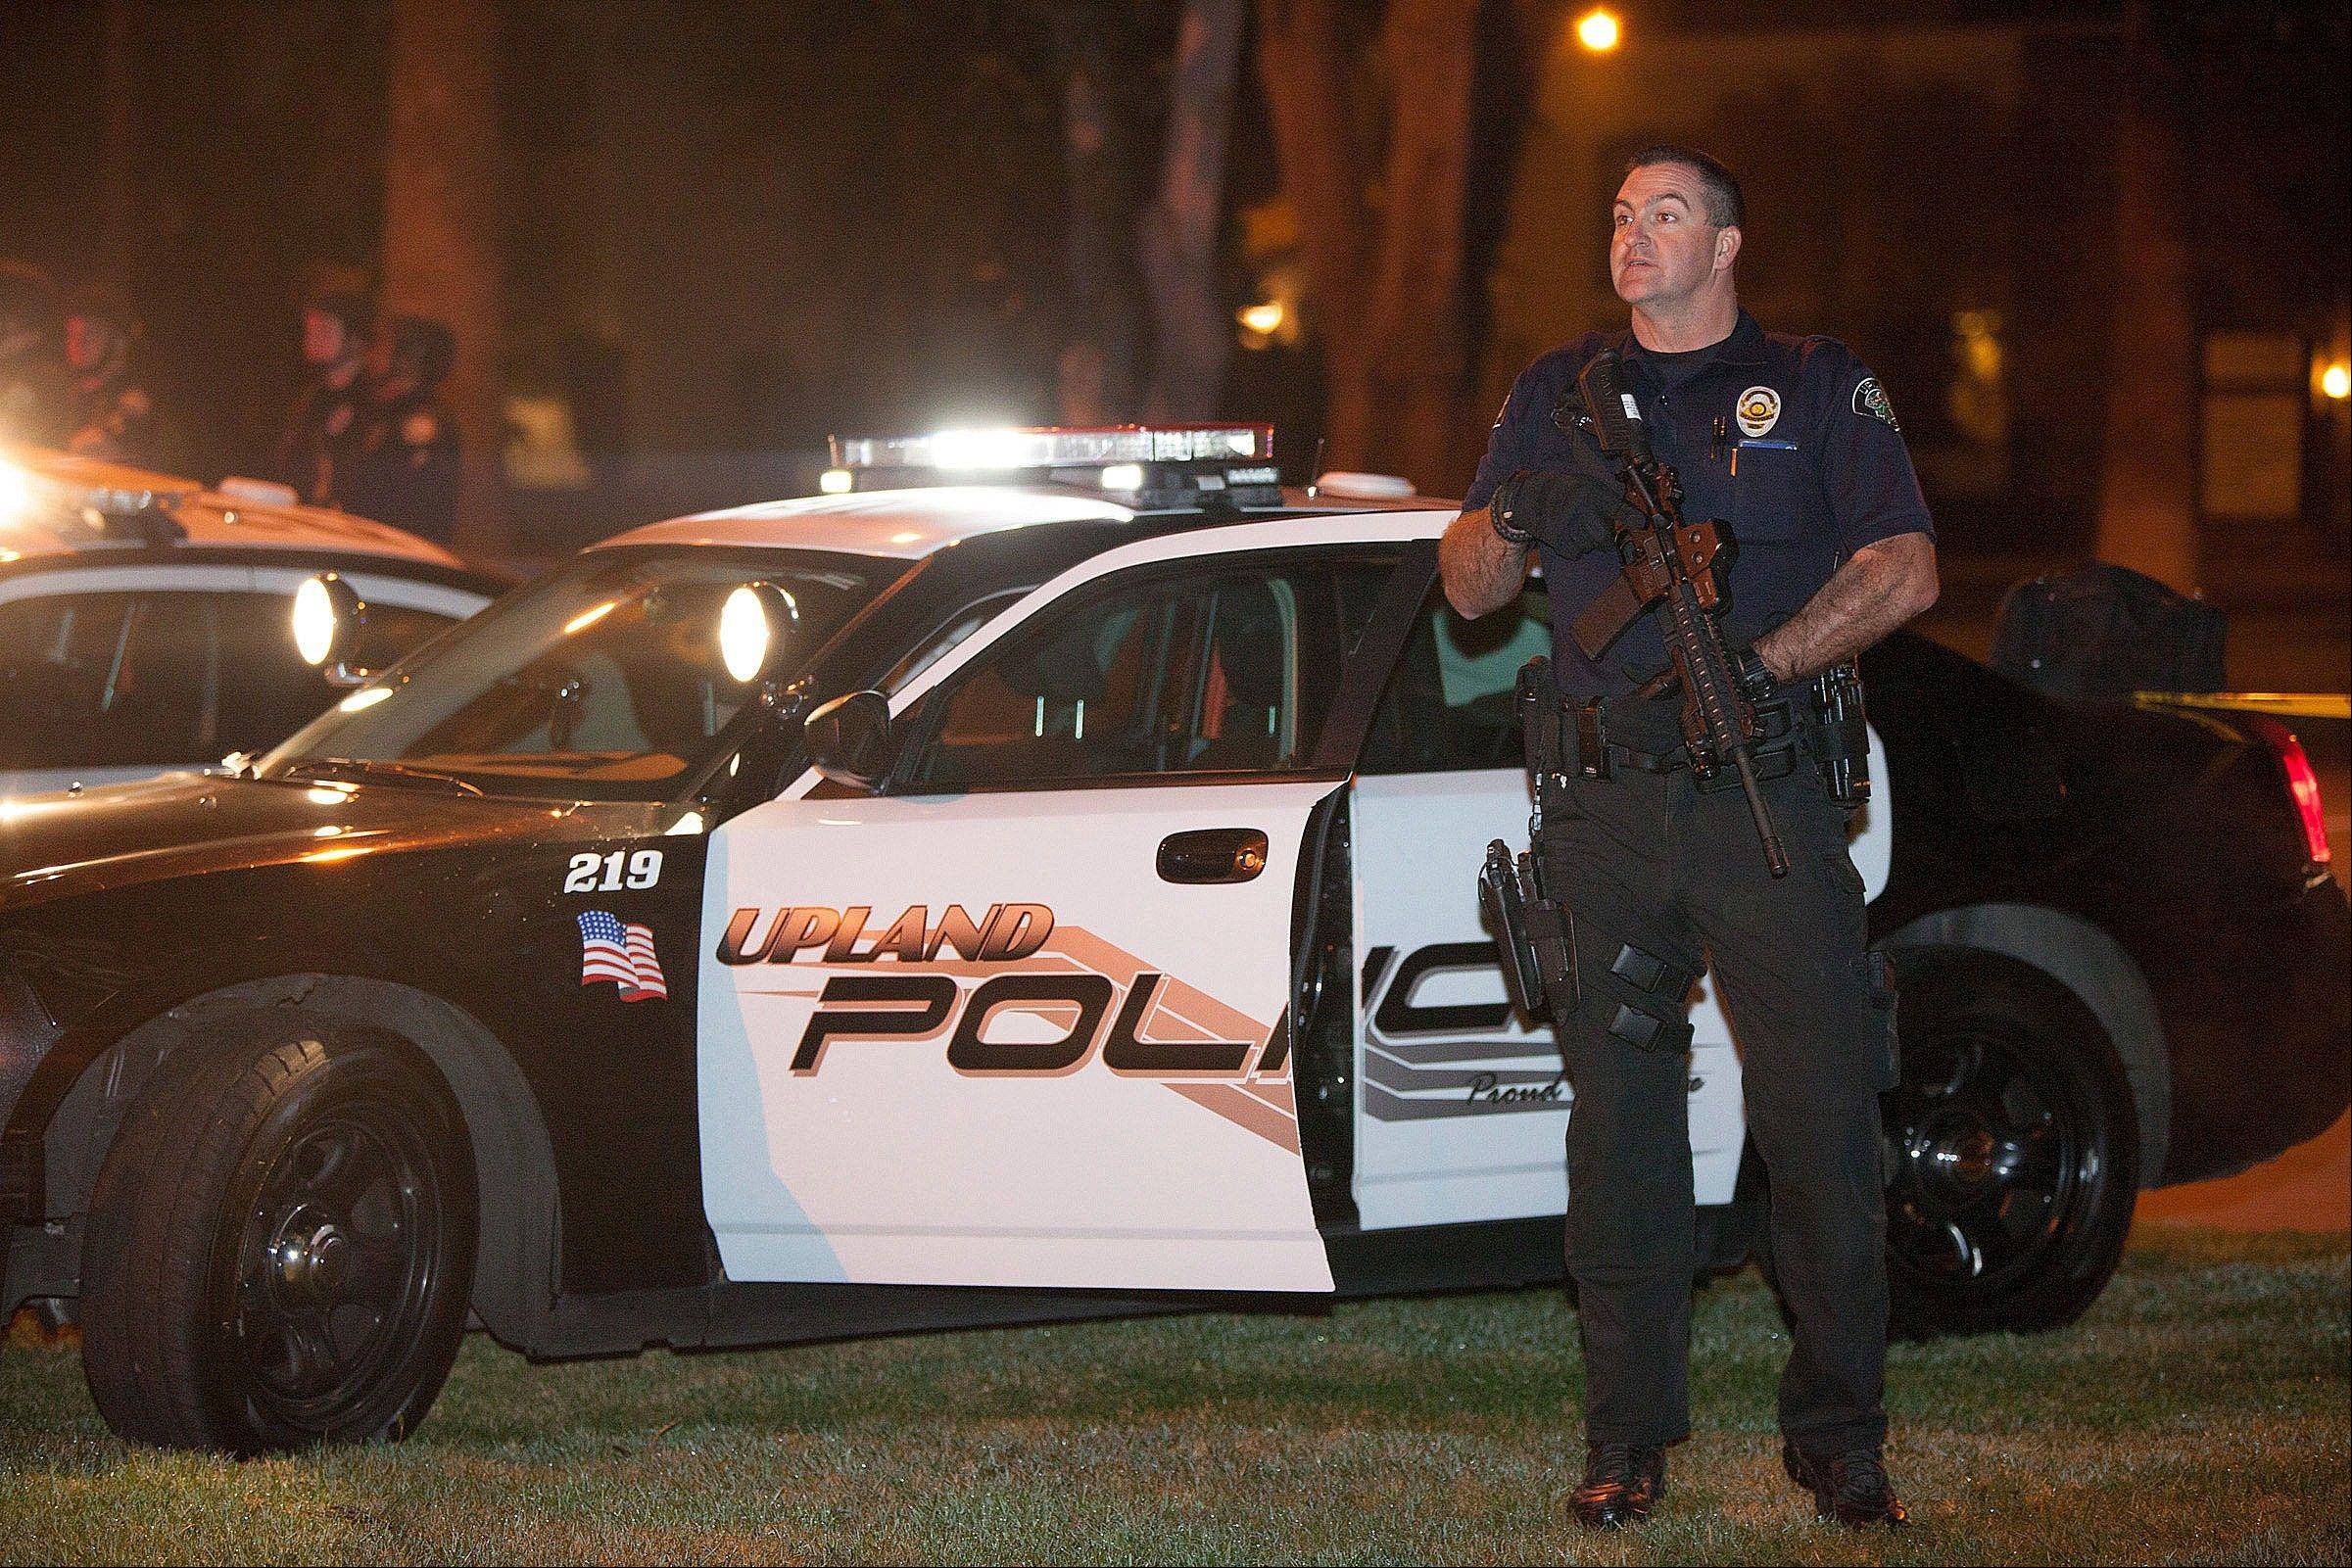 Police respond in Riverside, Calif., early Thursday morning after one officer was killed and another critically wounded in a shoot out with a murder suspect.